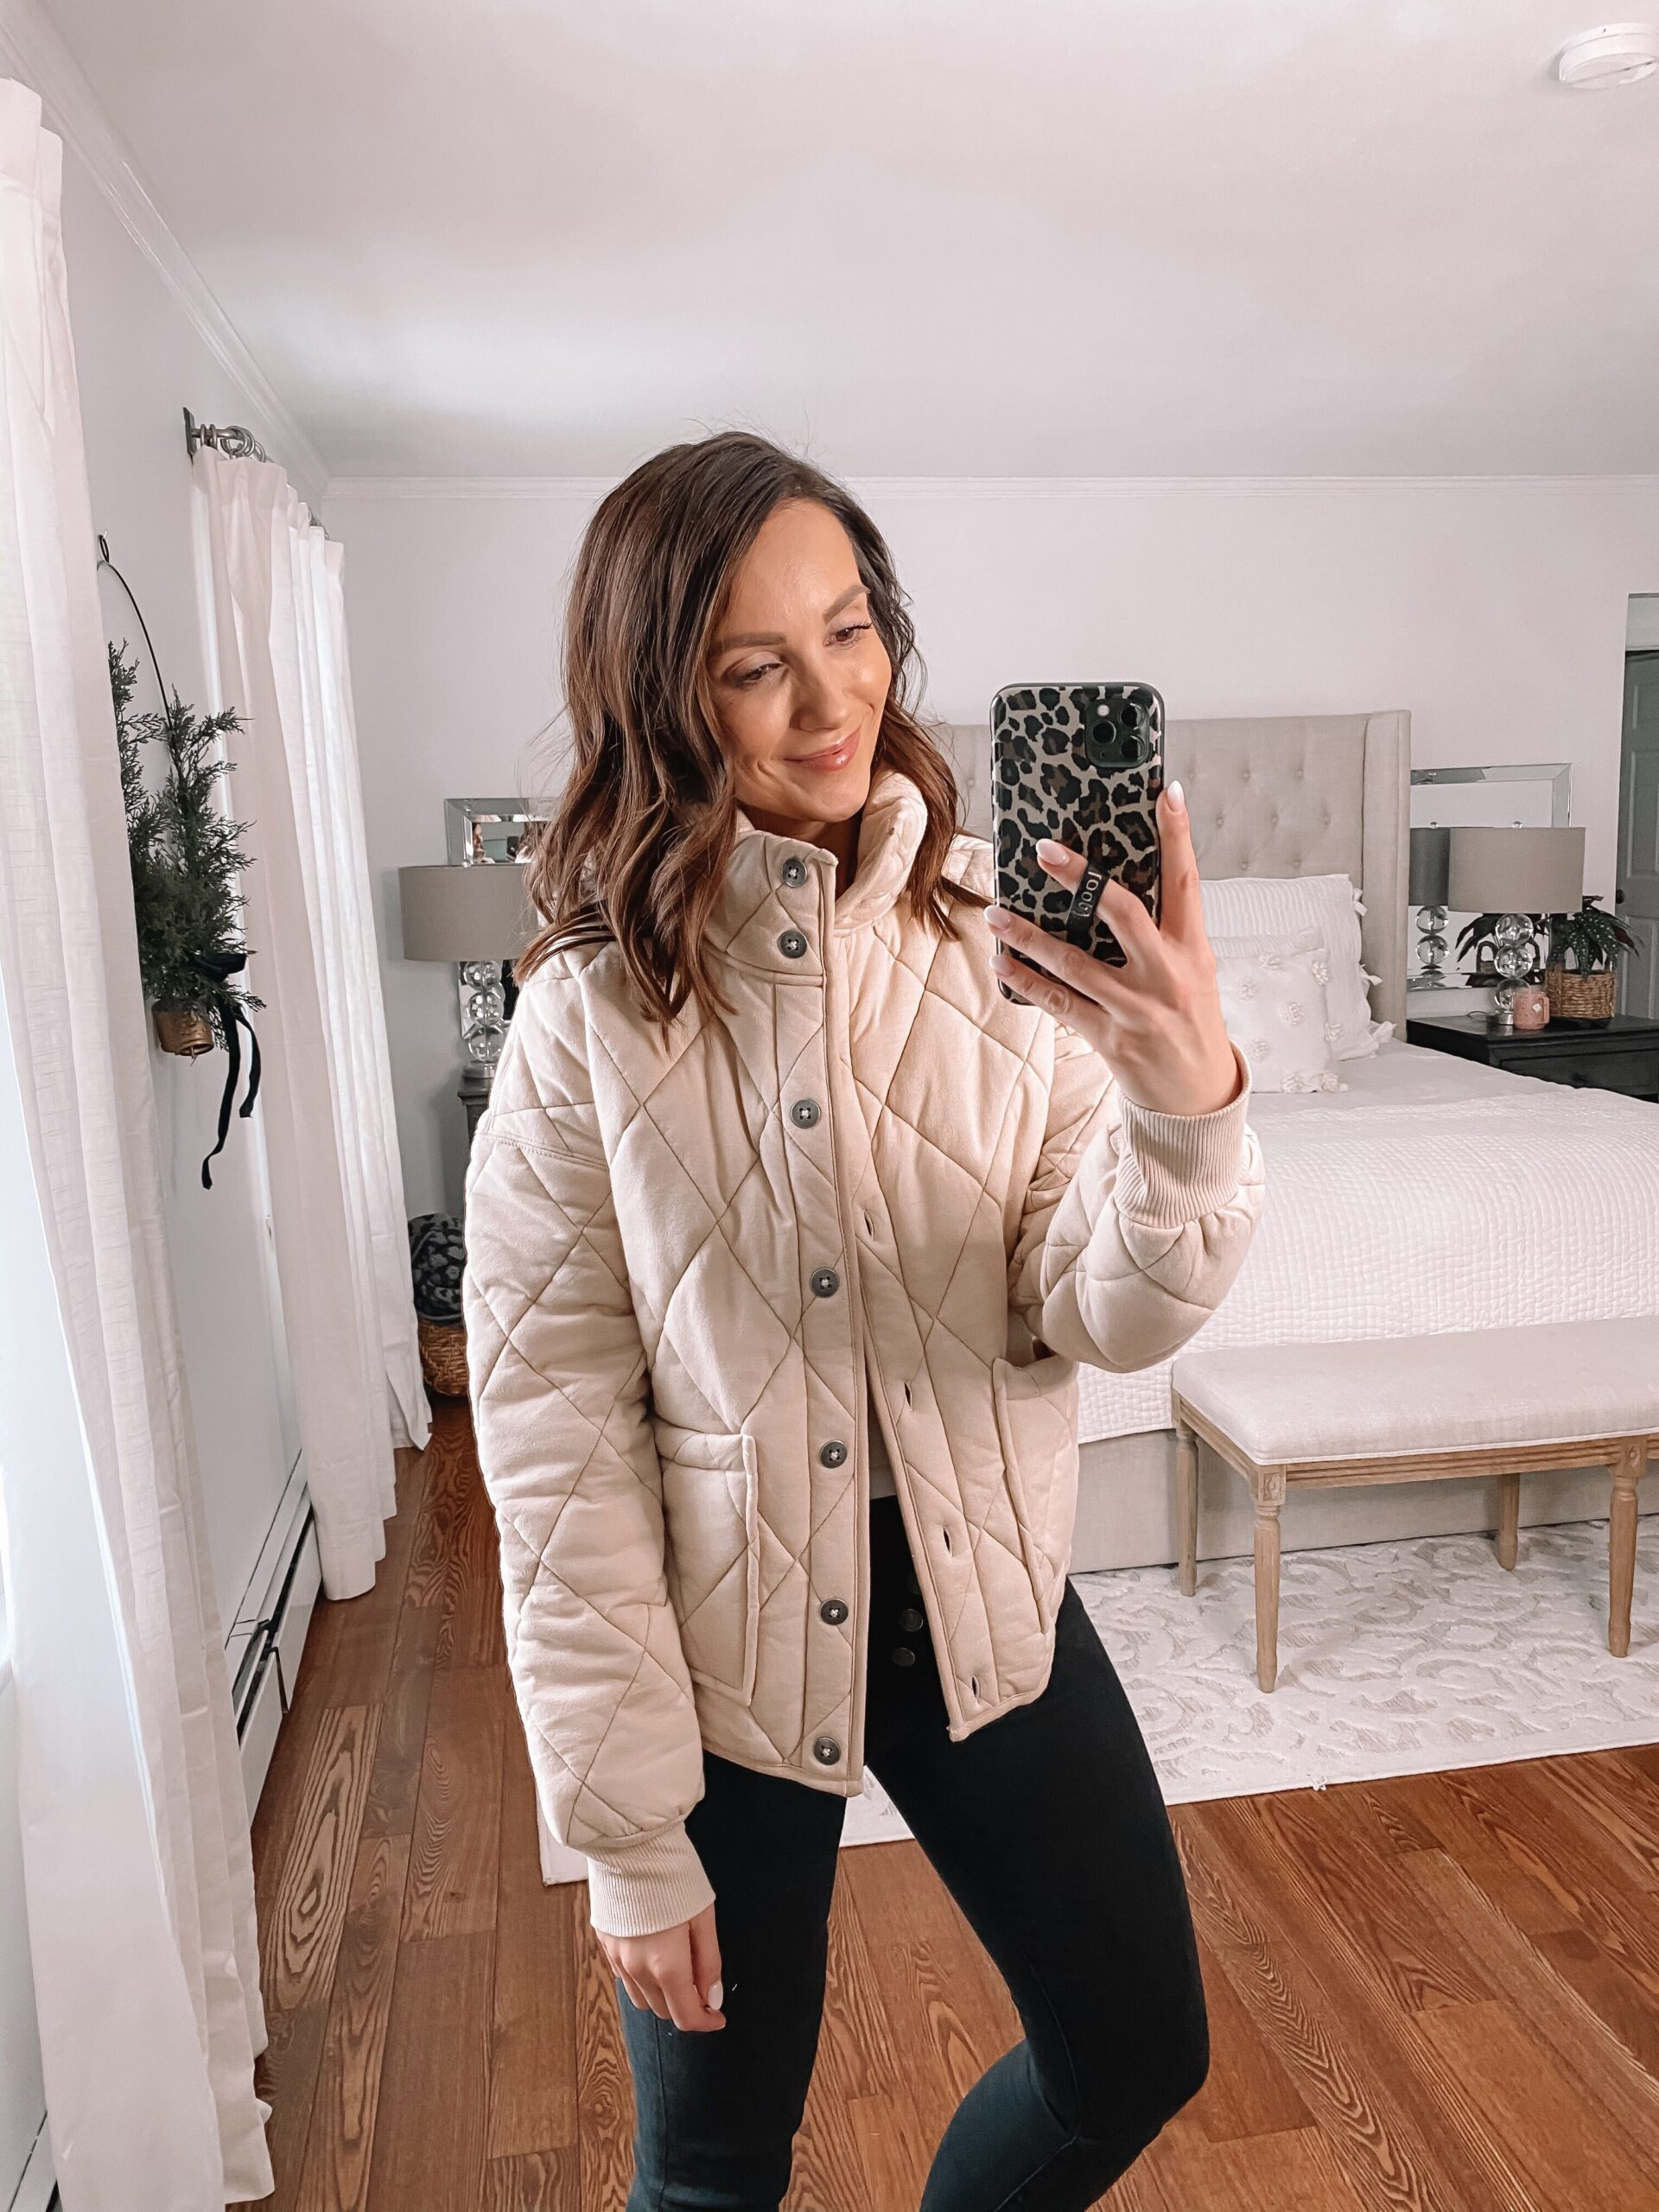 target style, target fashion, target quilted jacket